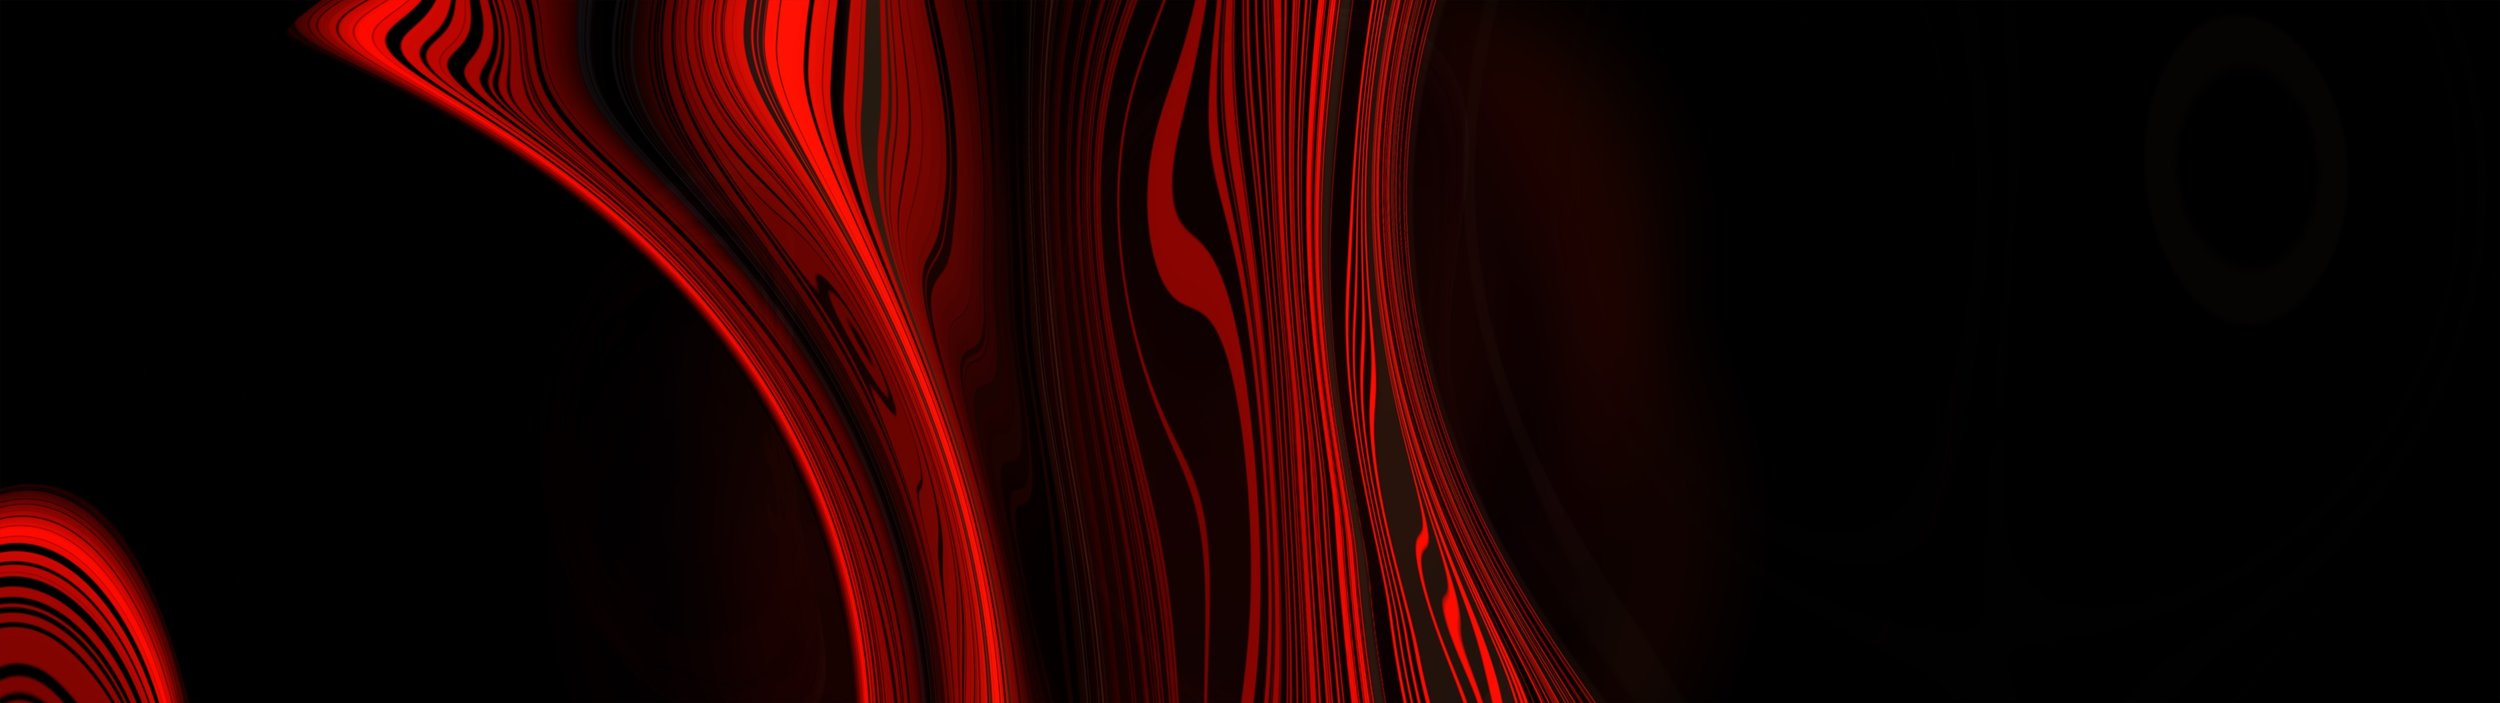 Color abstracts - Framegrab 07.jpg